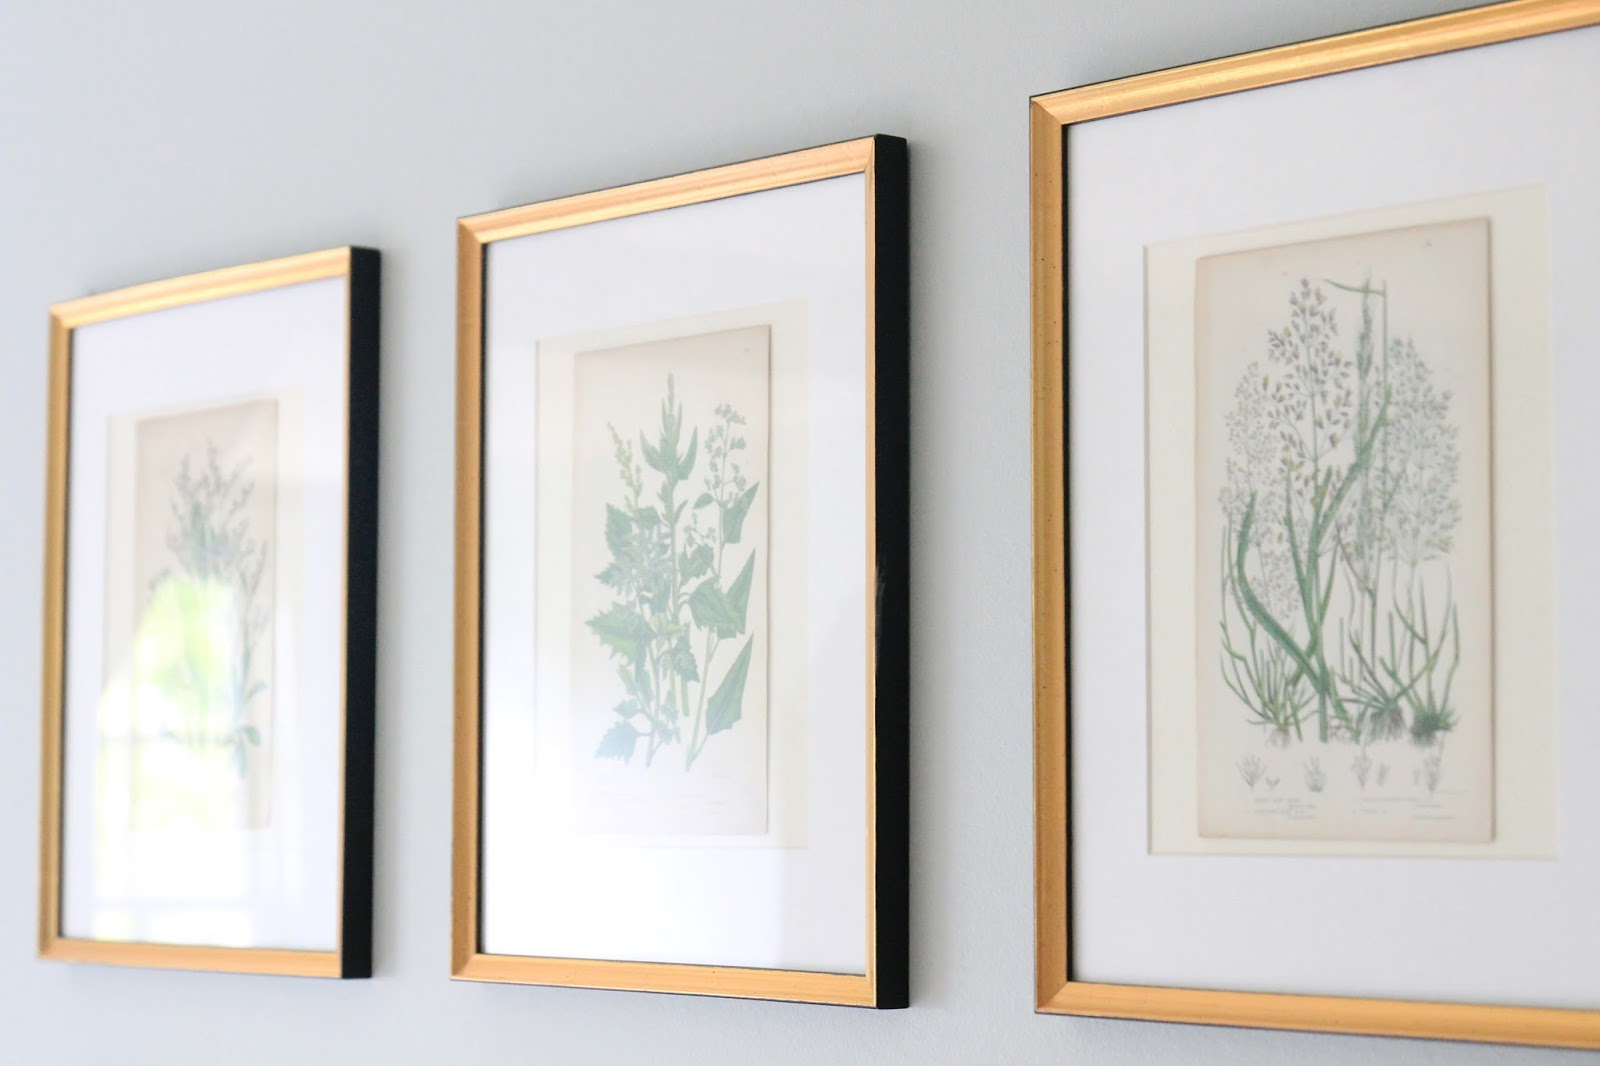 Jenny steffens hobick framing botanicals antique mirror find we have a really expensive looking display for our guest room he was right they are completely elevated from the spray painted reused cream frames jeuxipadfo Images